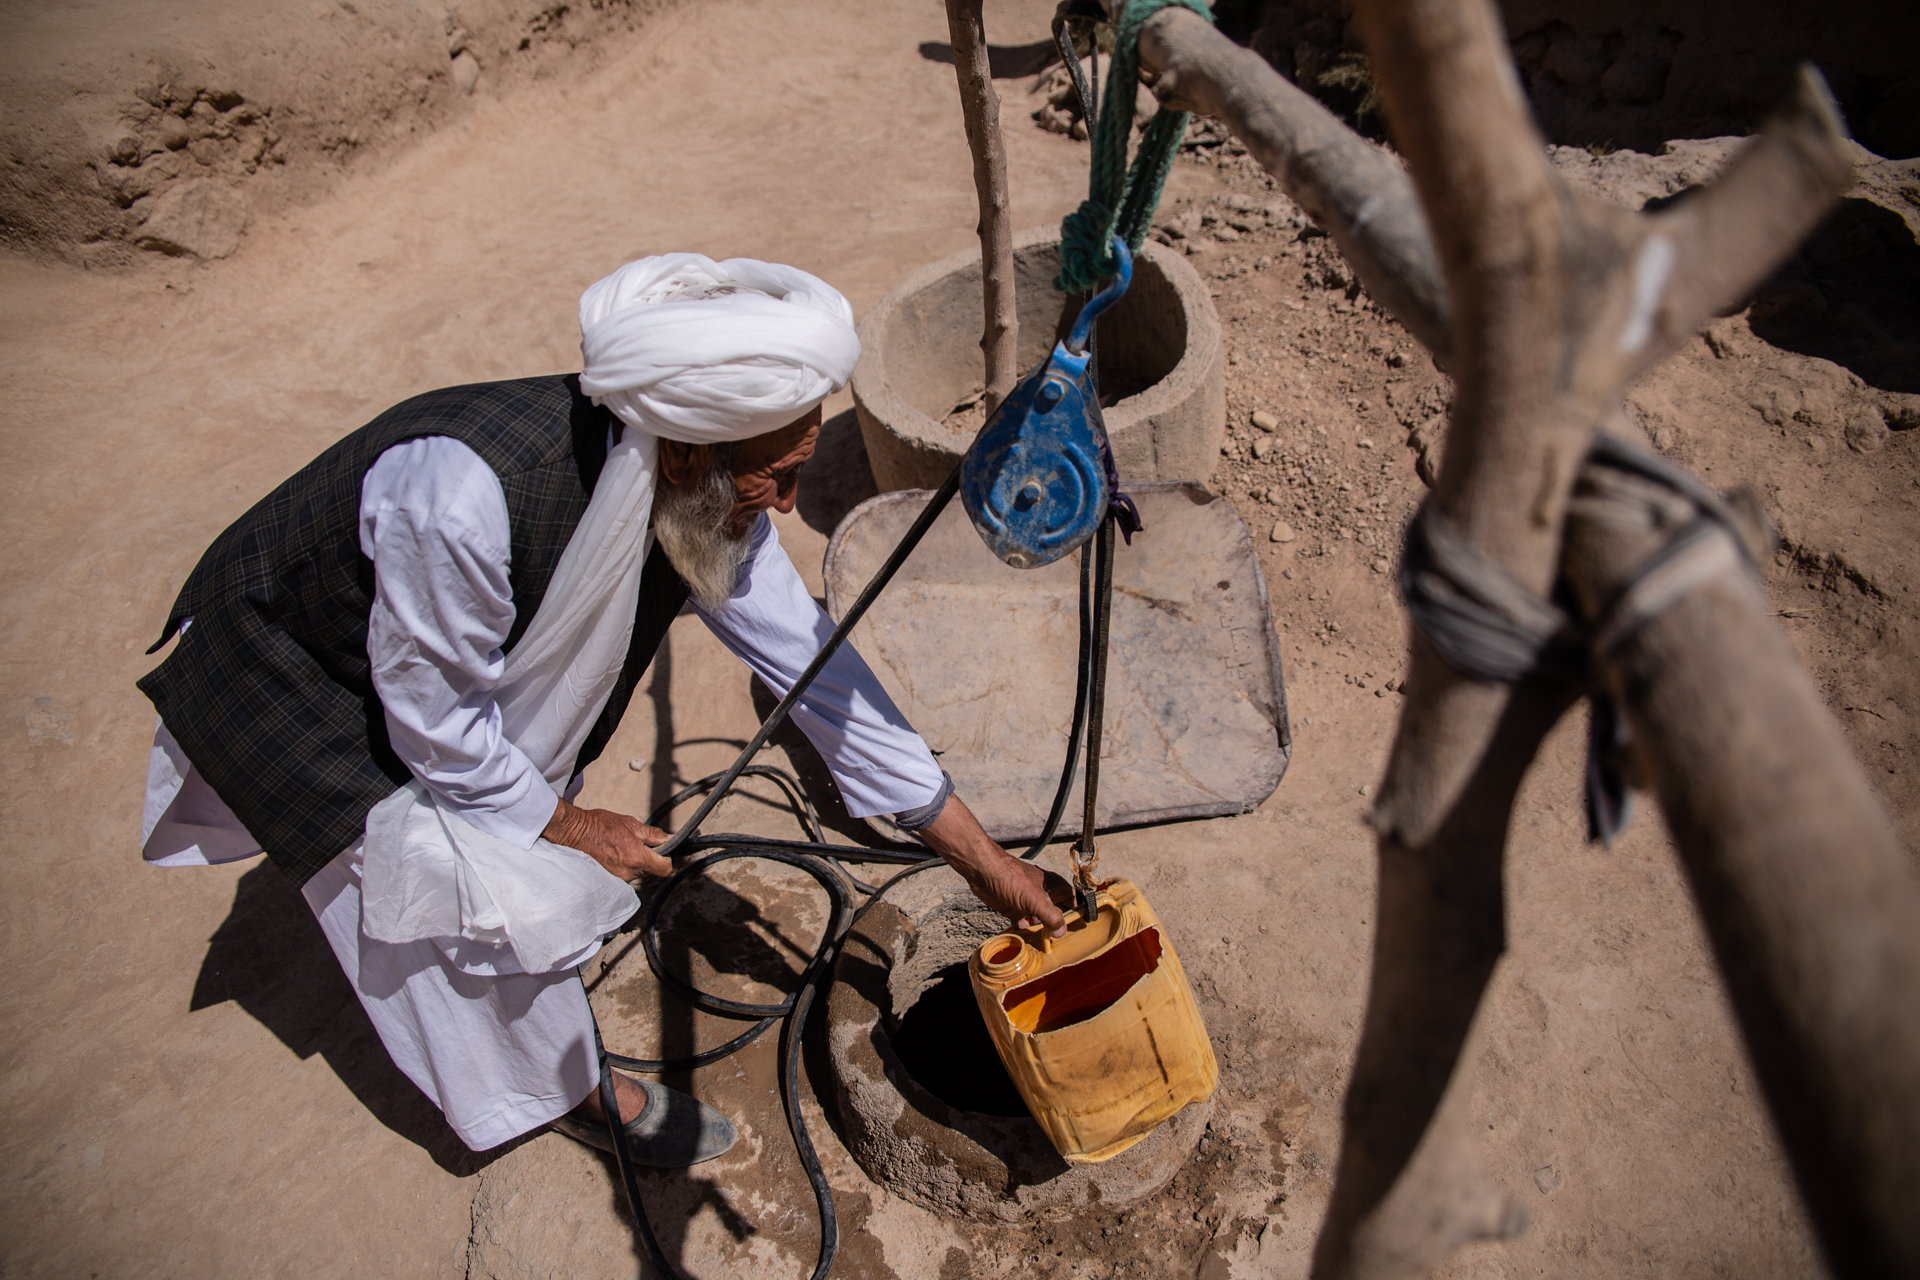 An older man in Afghanistan draws water from a well